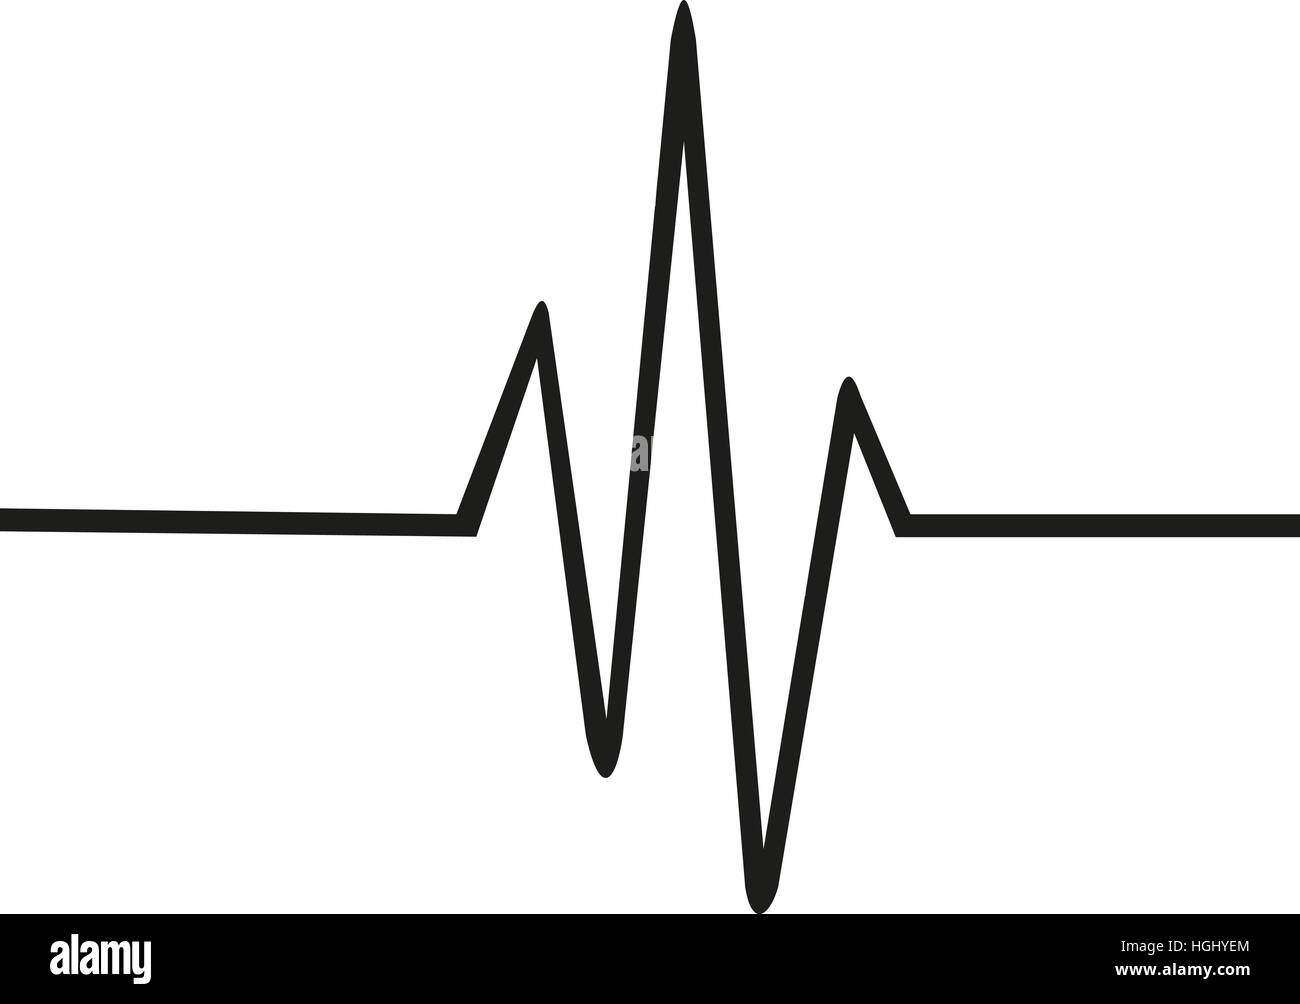 Heartbeat Line Art : Heartbeat black and white stock photos images alamy